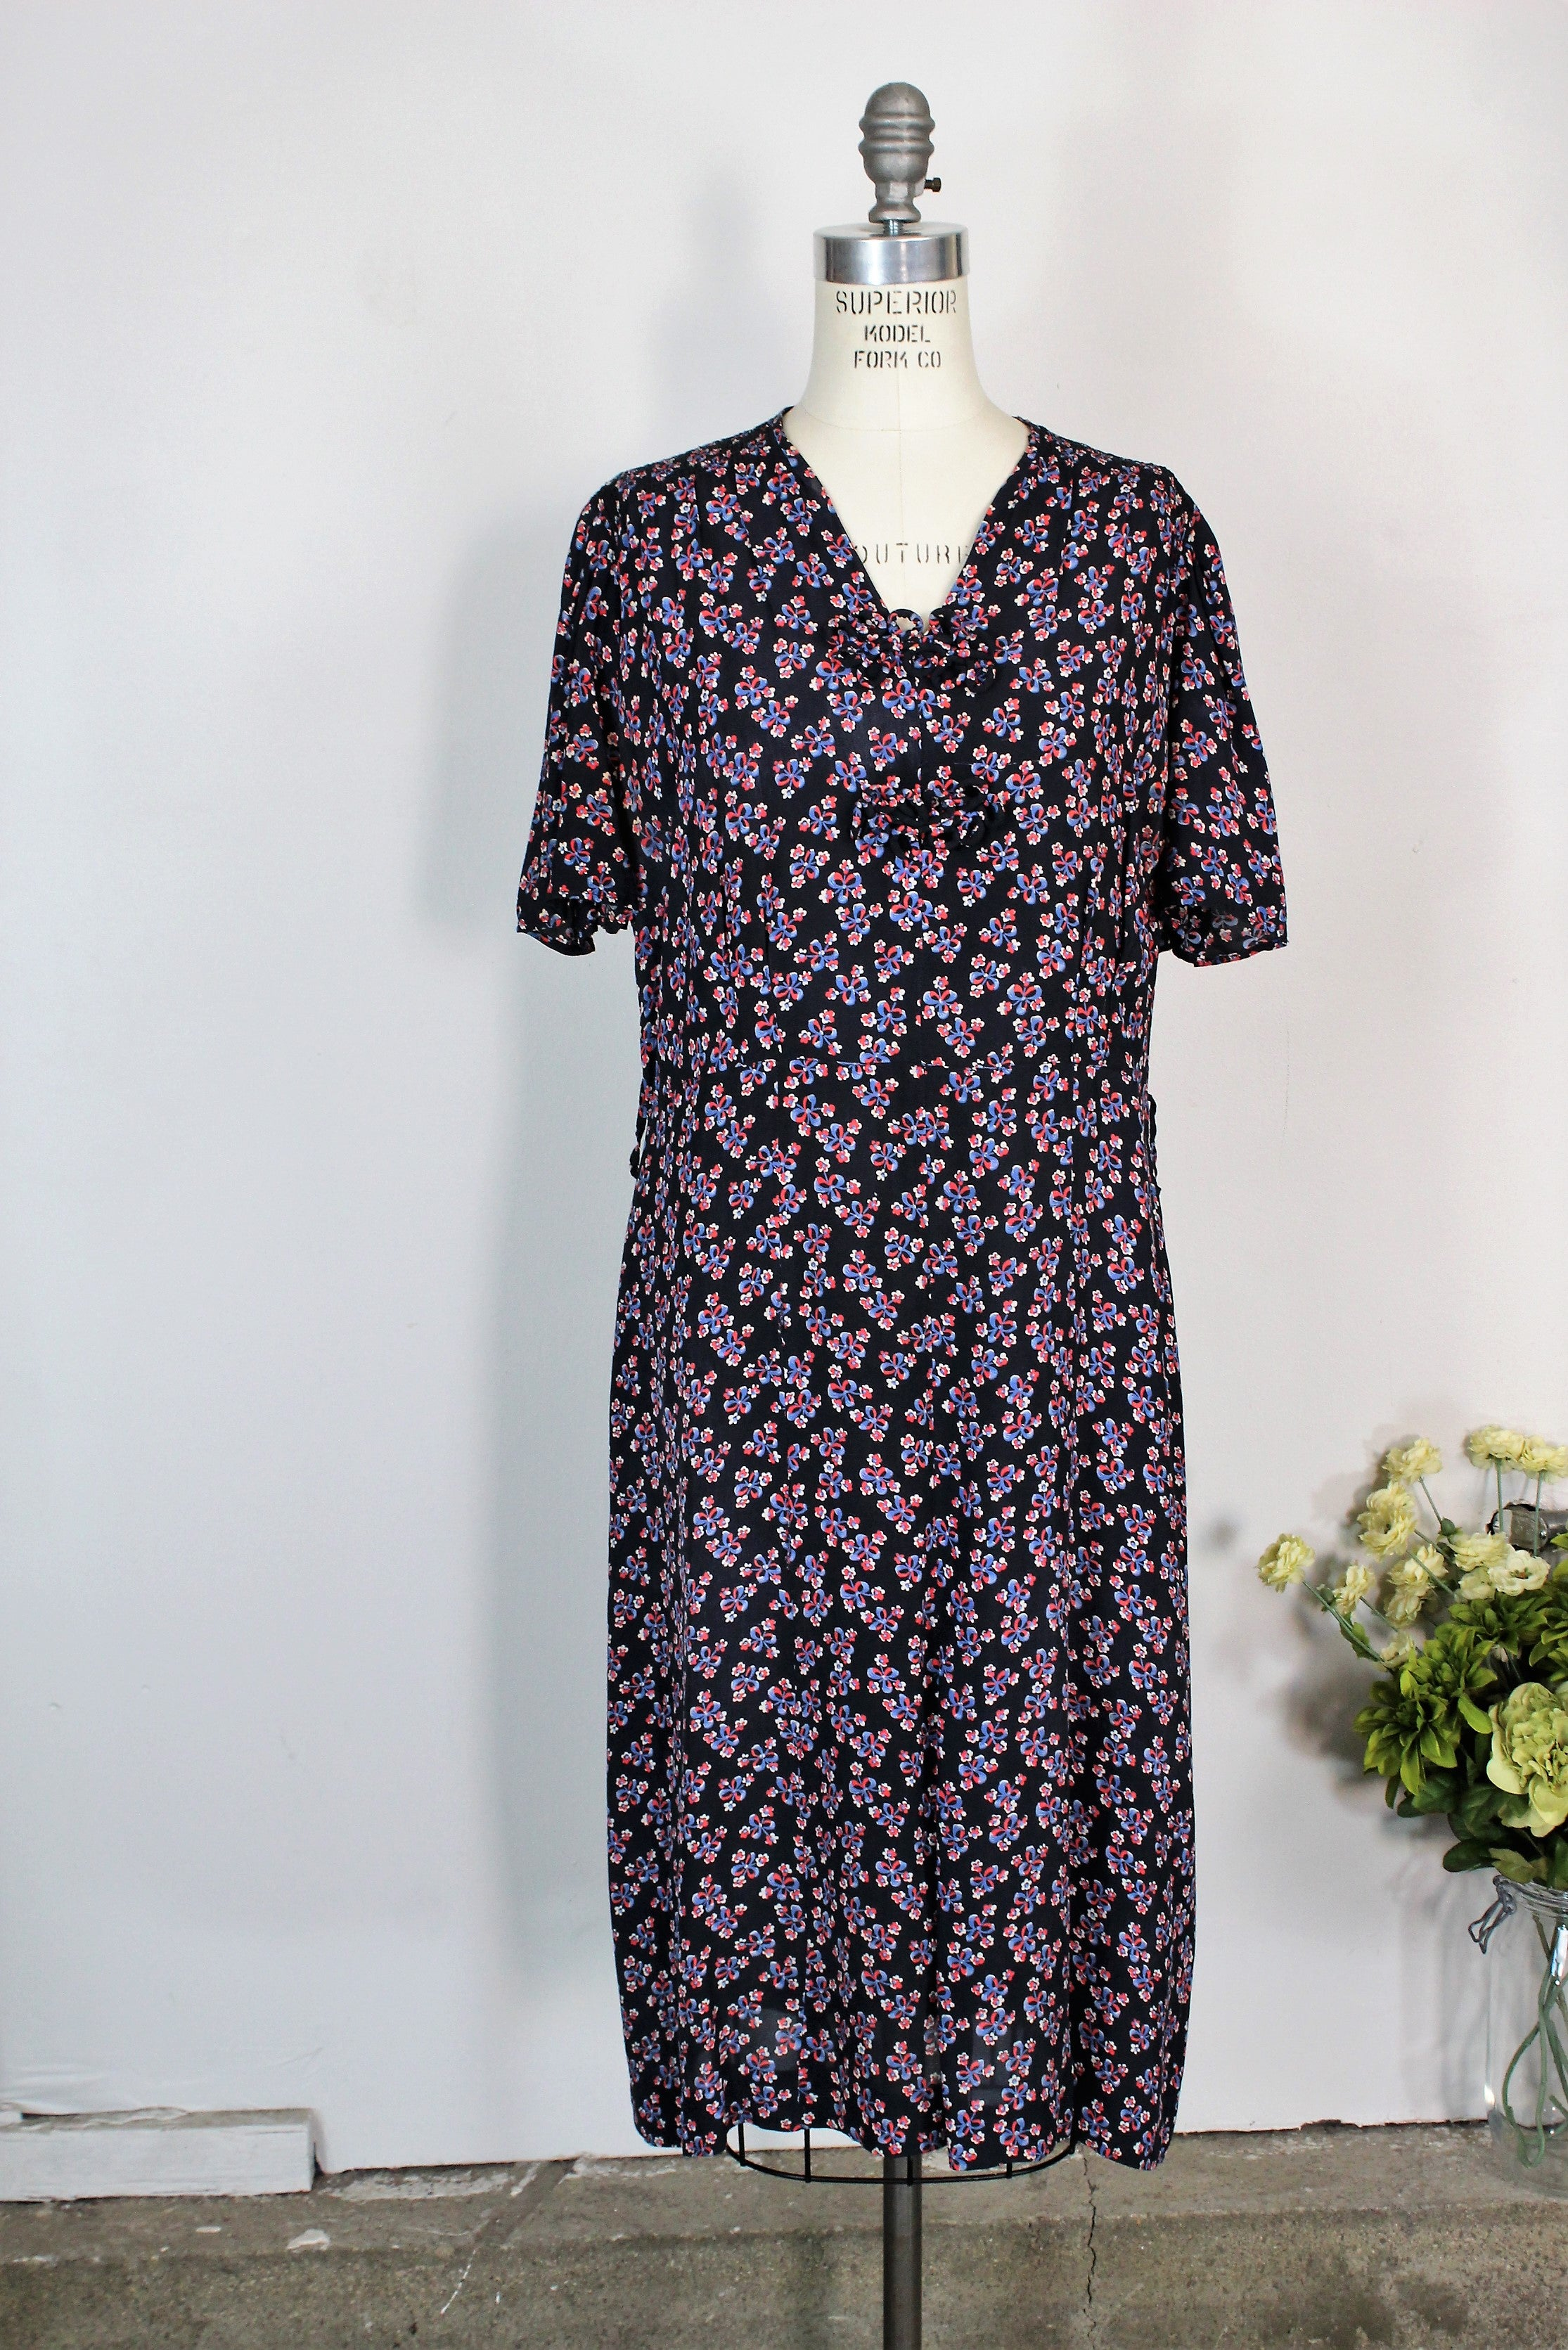 Vintage 1940s Rayon Day Dress With A Floral And Bow Print In Red White And Blue